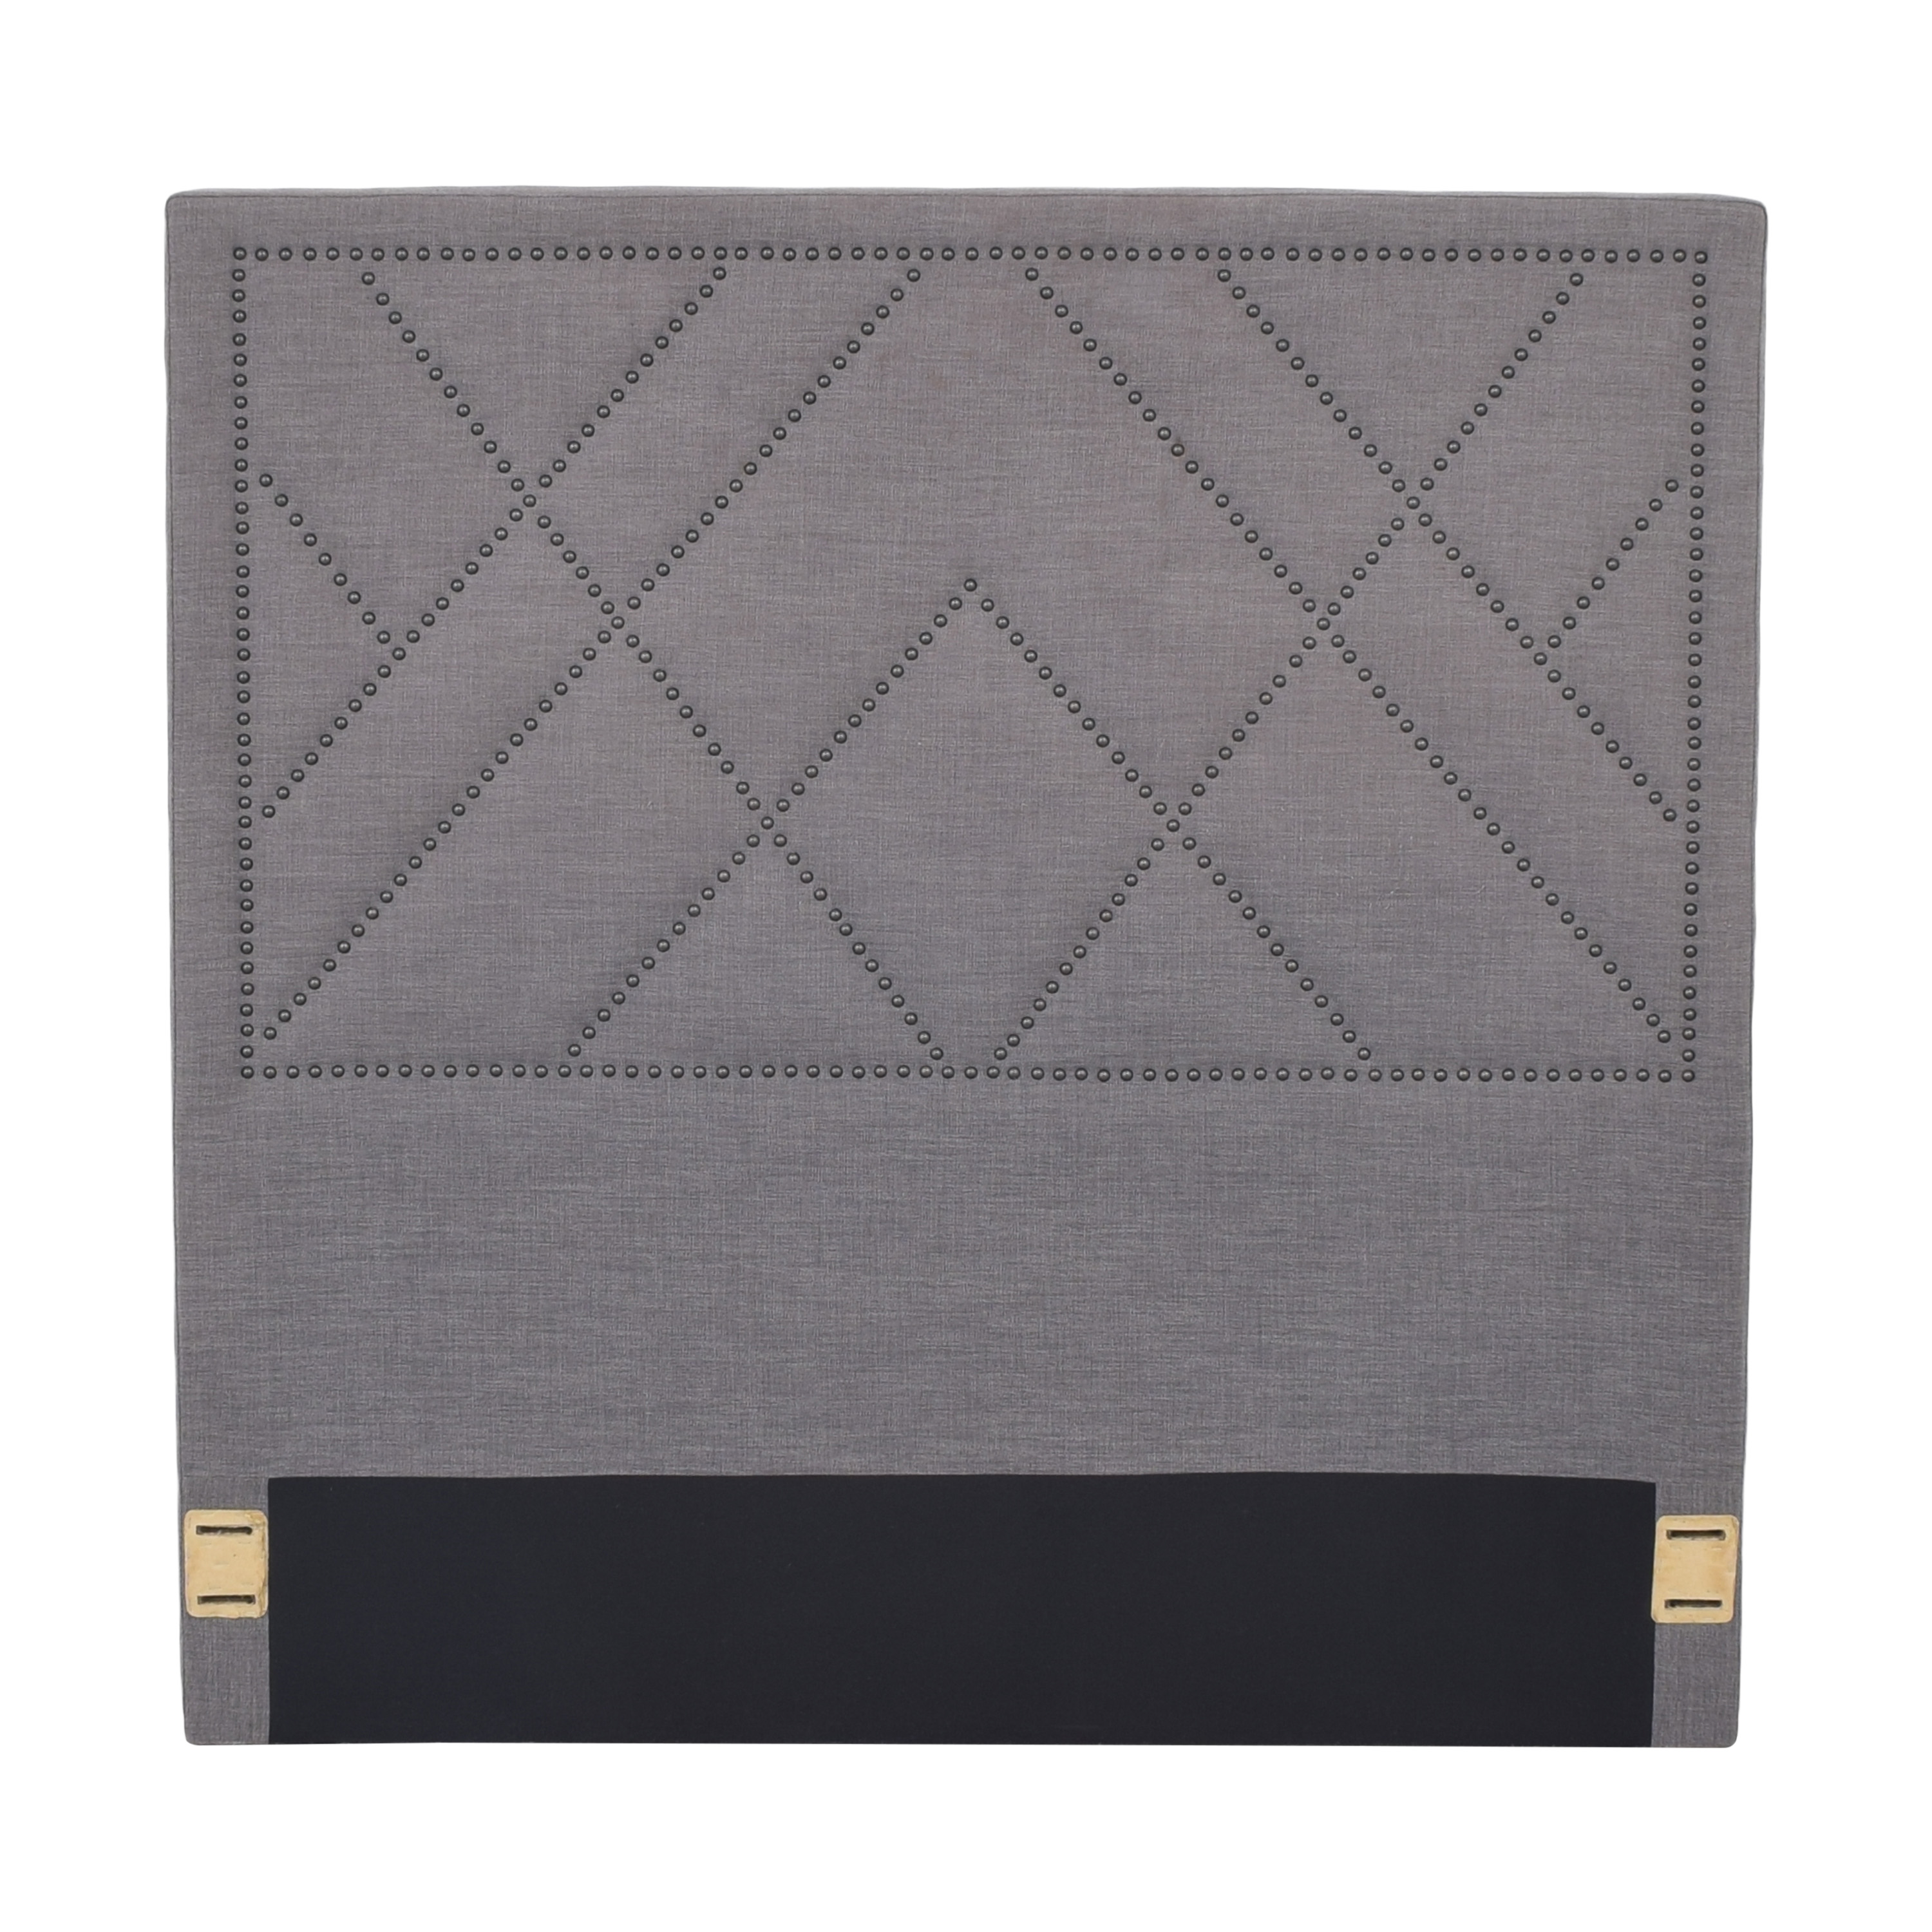 West Elm West Elm Grey Nailhead Patterned Full Headboard discount